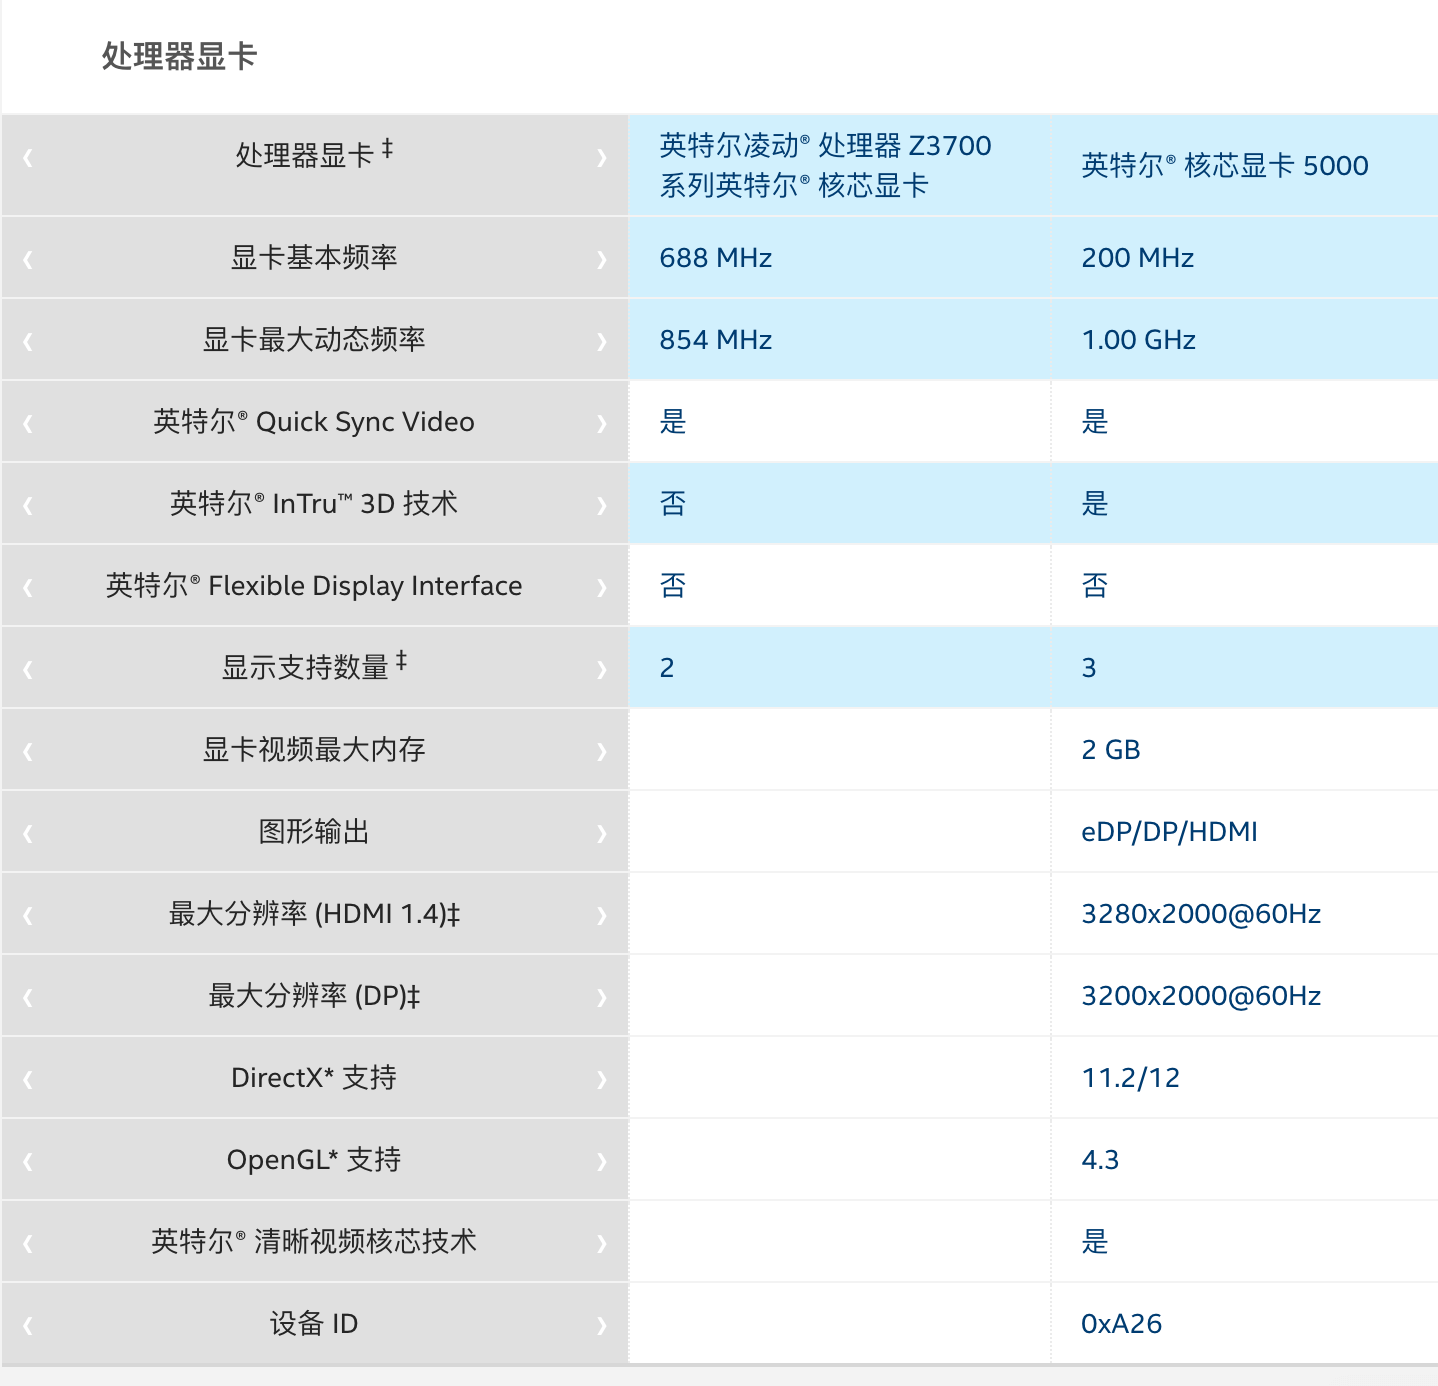 20190726-140237.png